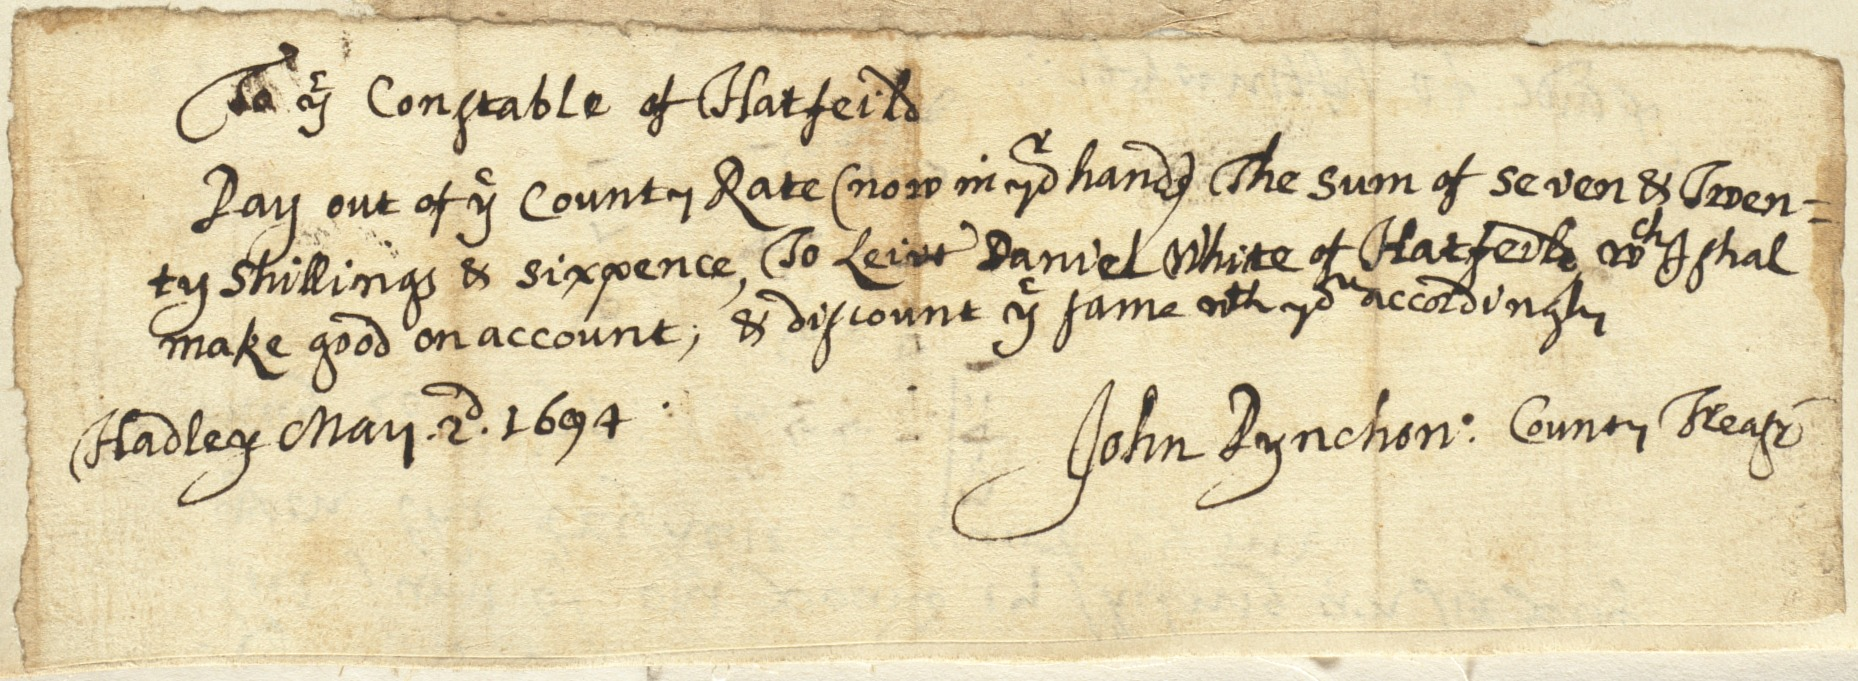 Note to Constable of Hatfield from John Pynchon, Hadley, May 2, 1694